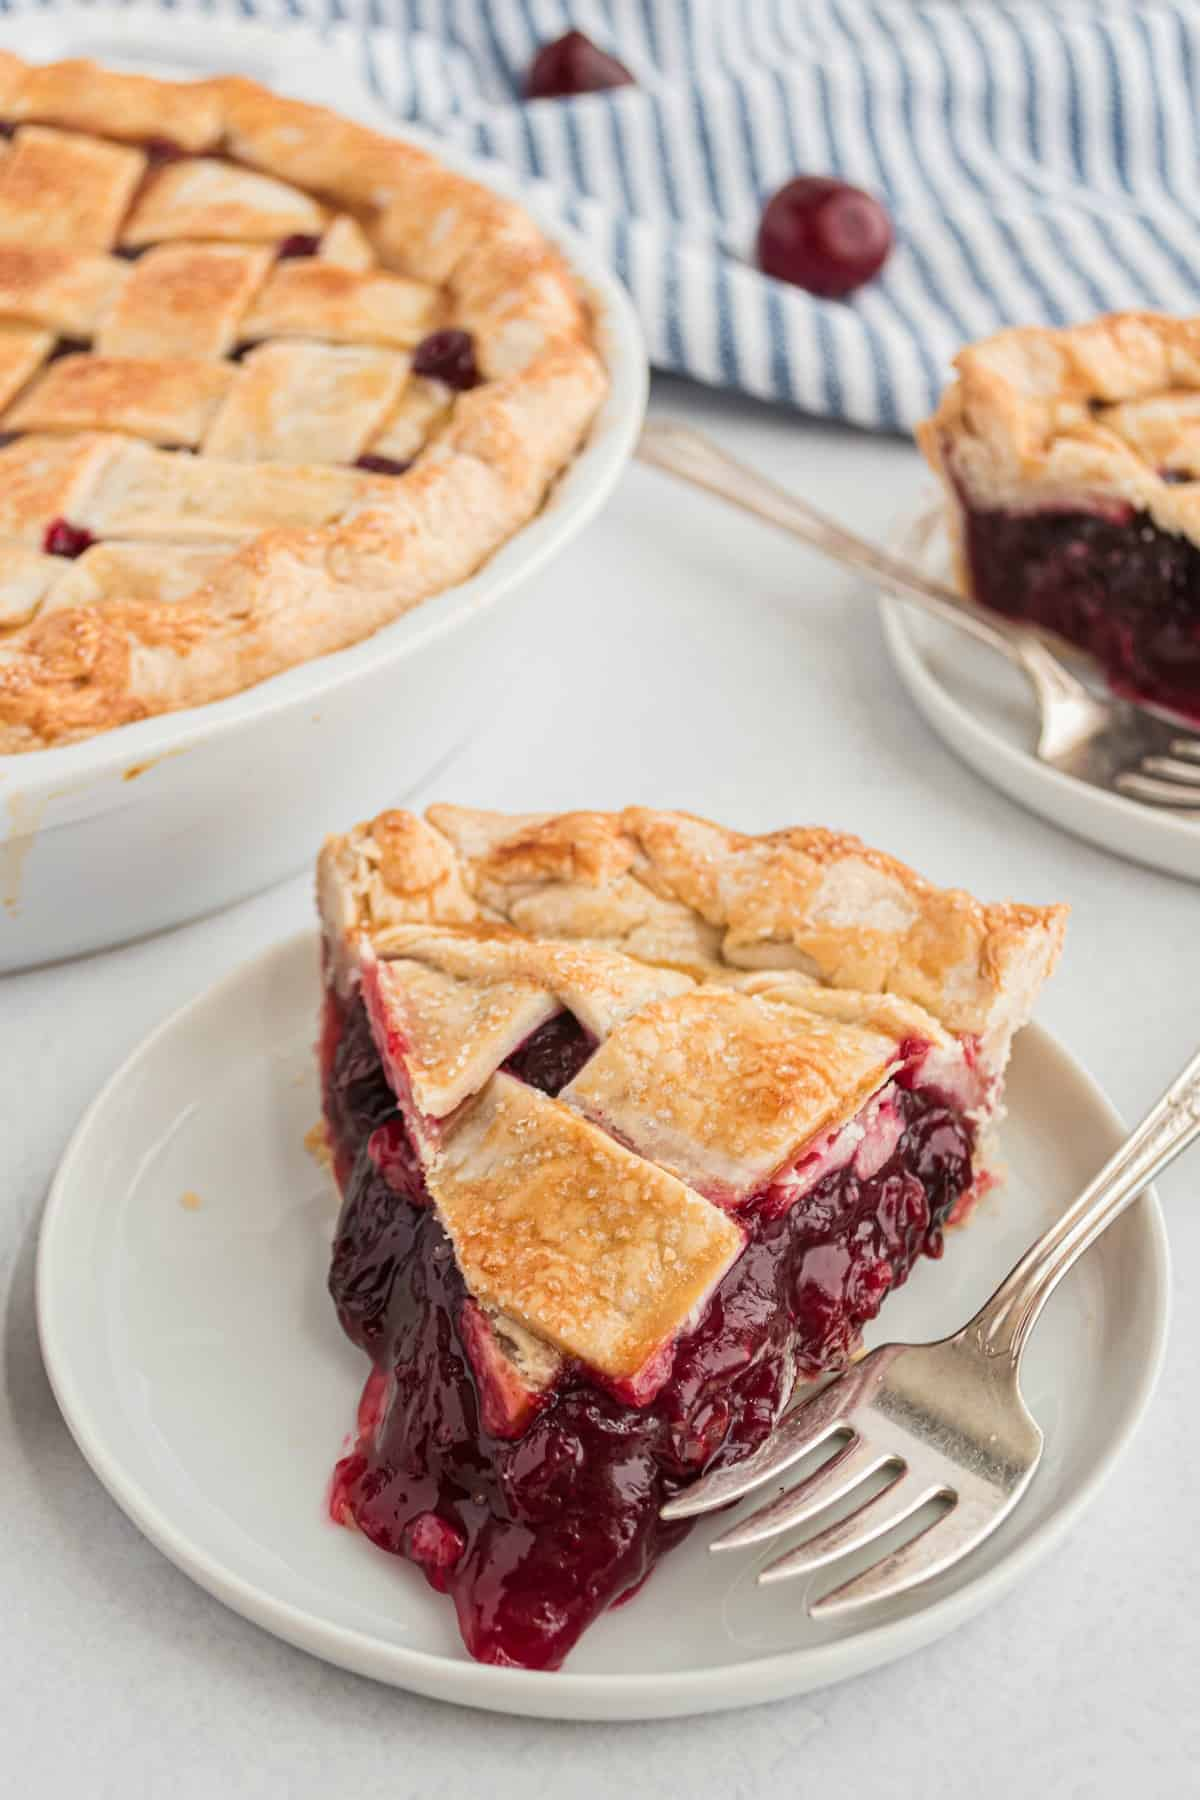 Slice of cherry pie with lattice crust on a white plate.